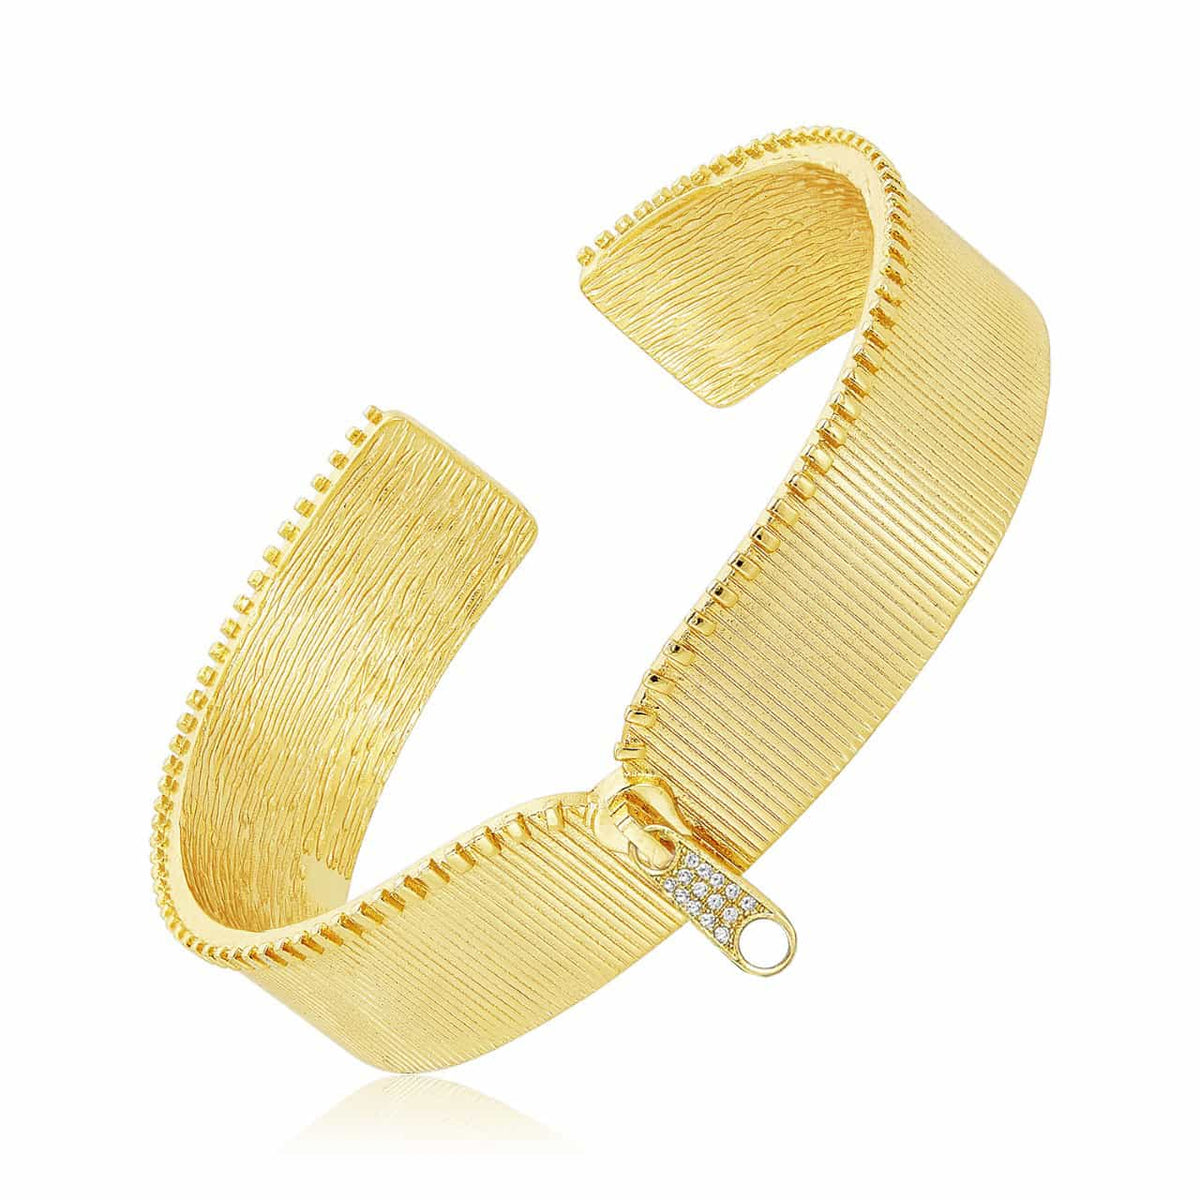 The Moto Zipper Cuff Bracelet